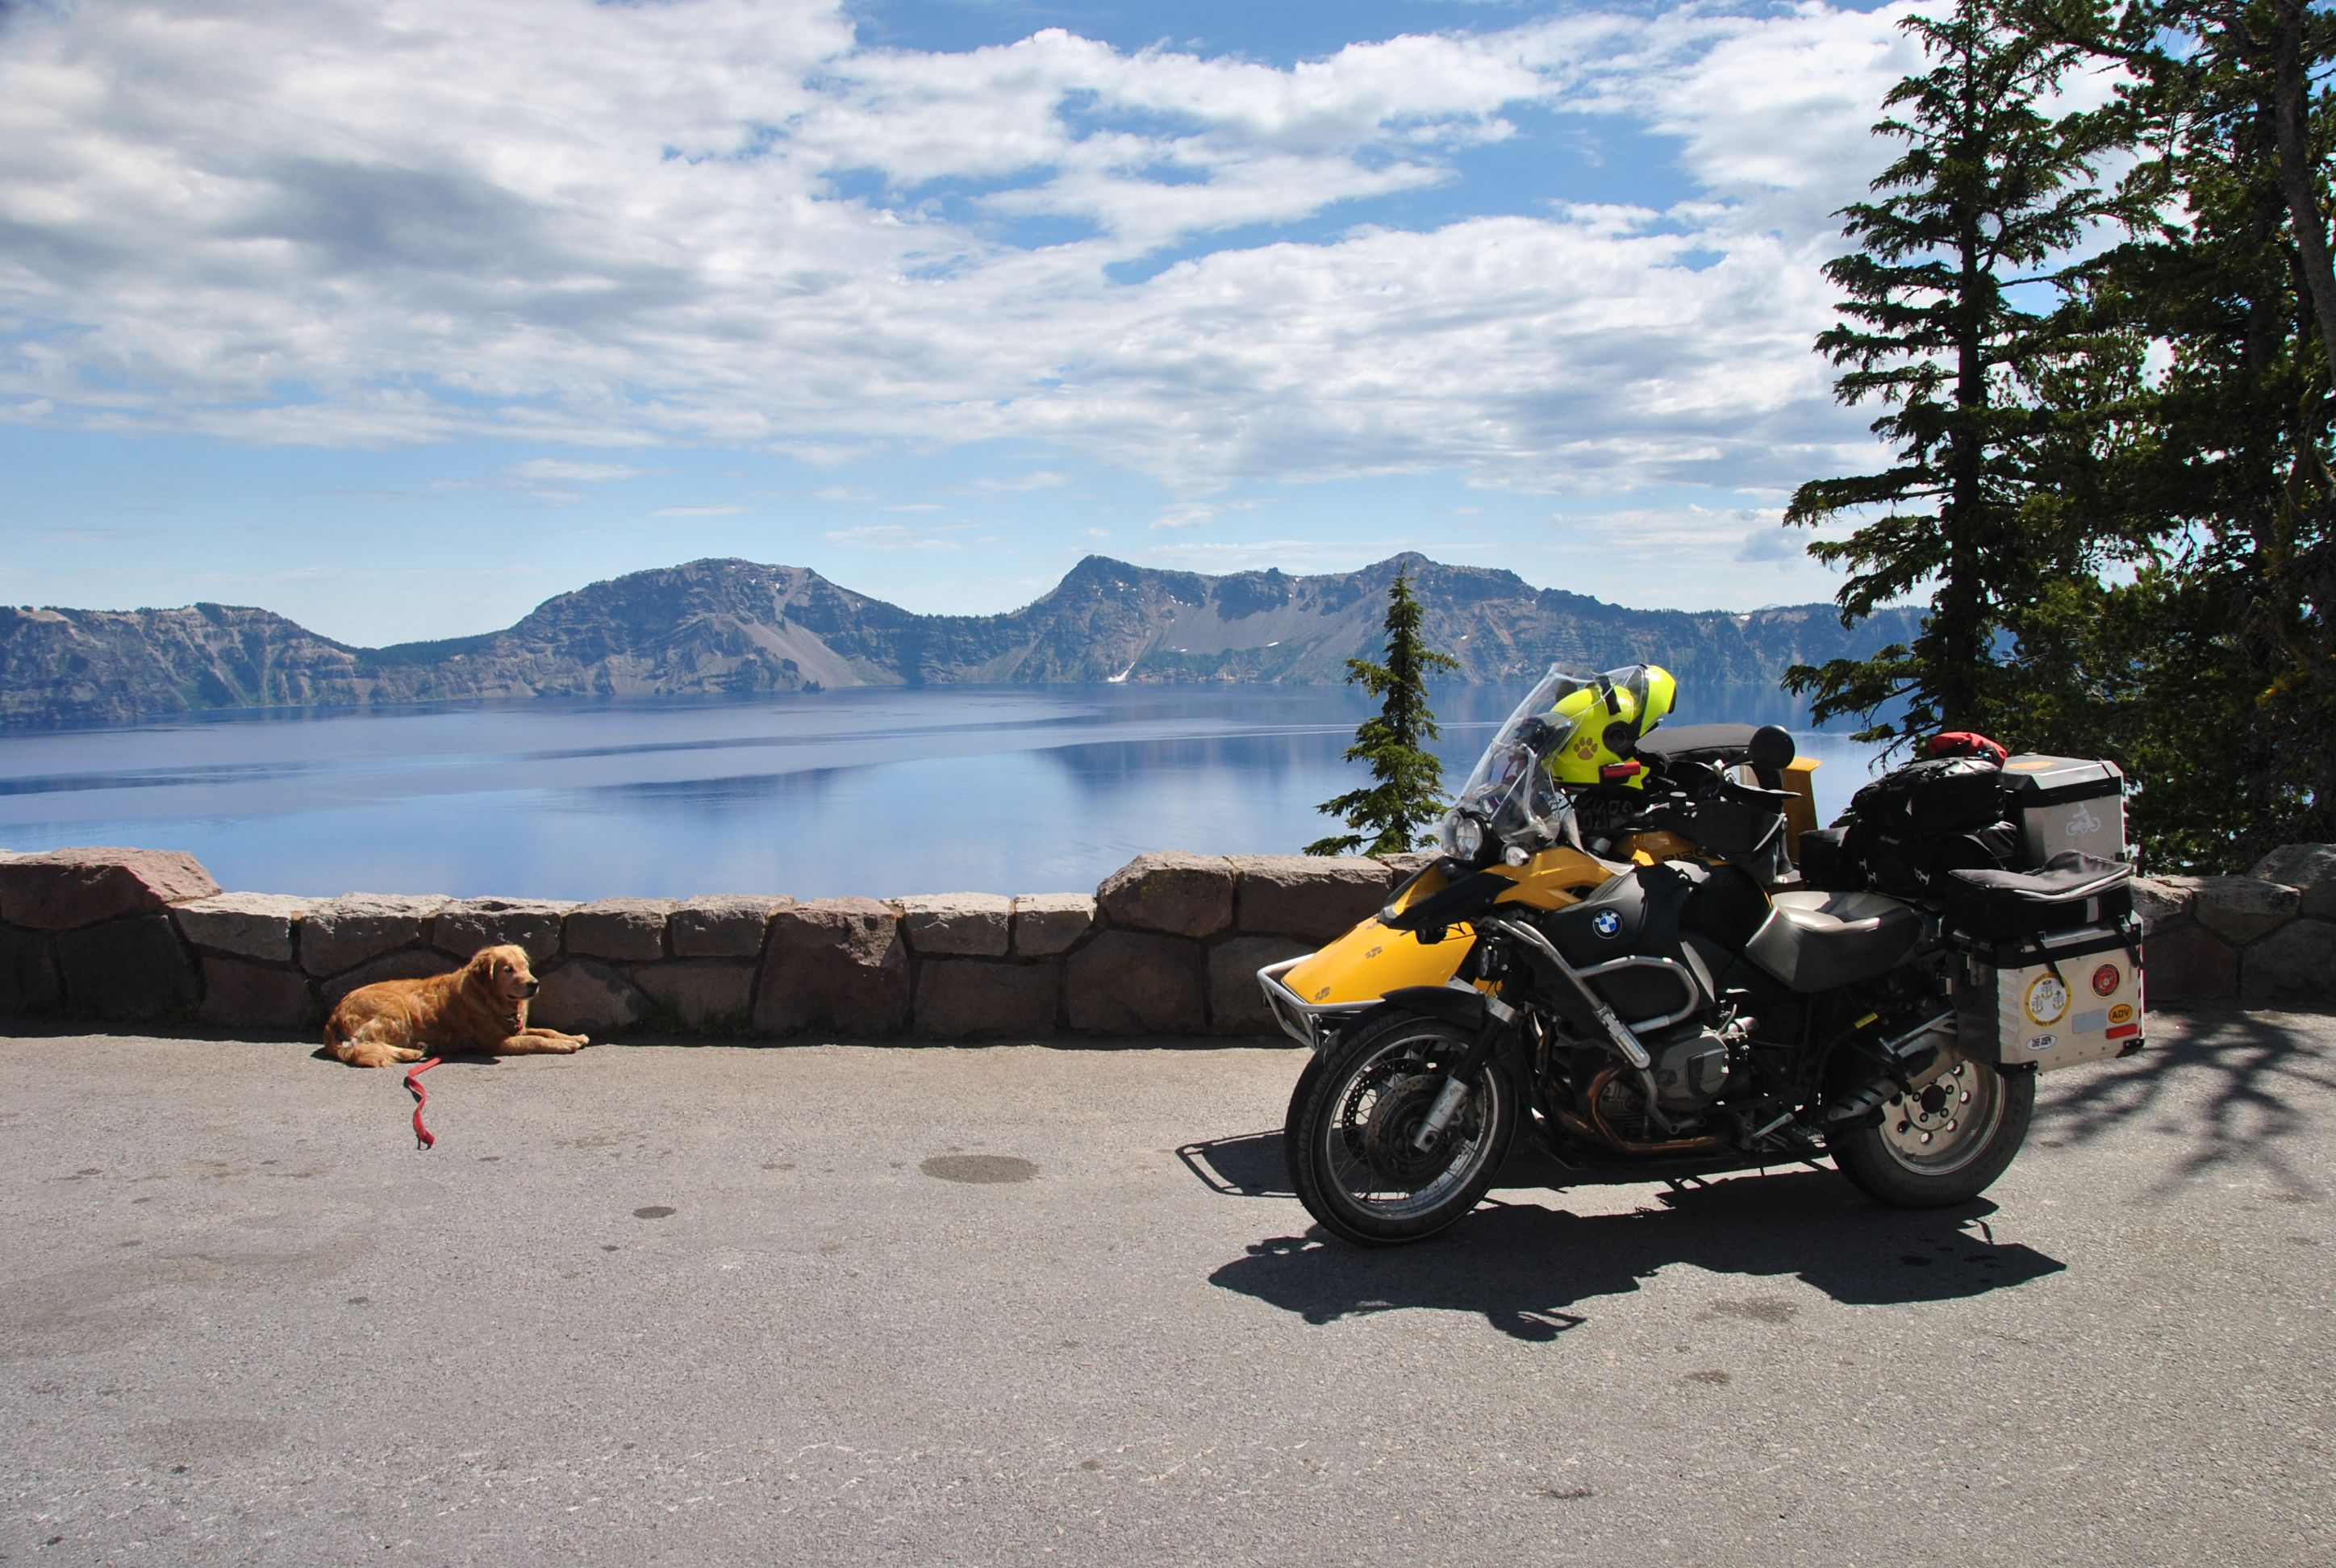 15JUL_BarleyCraterLake2